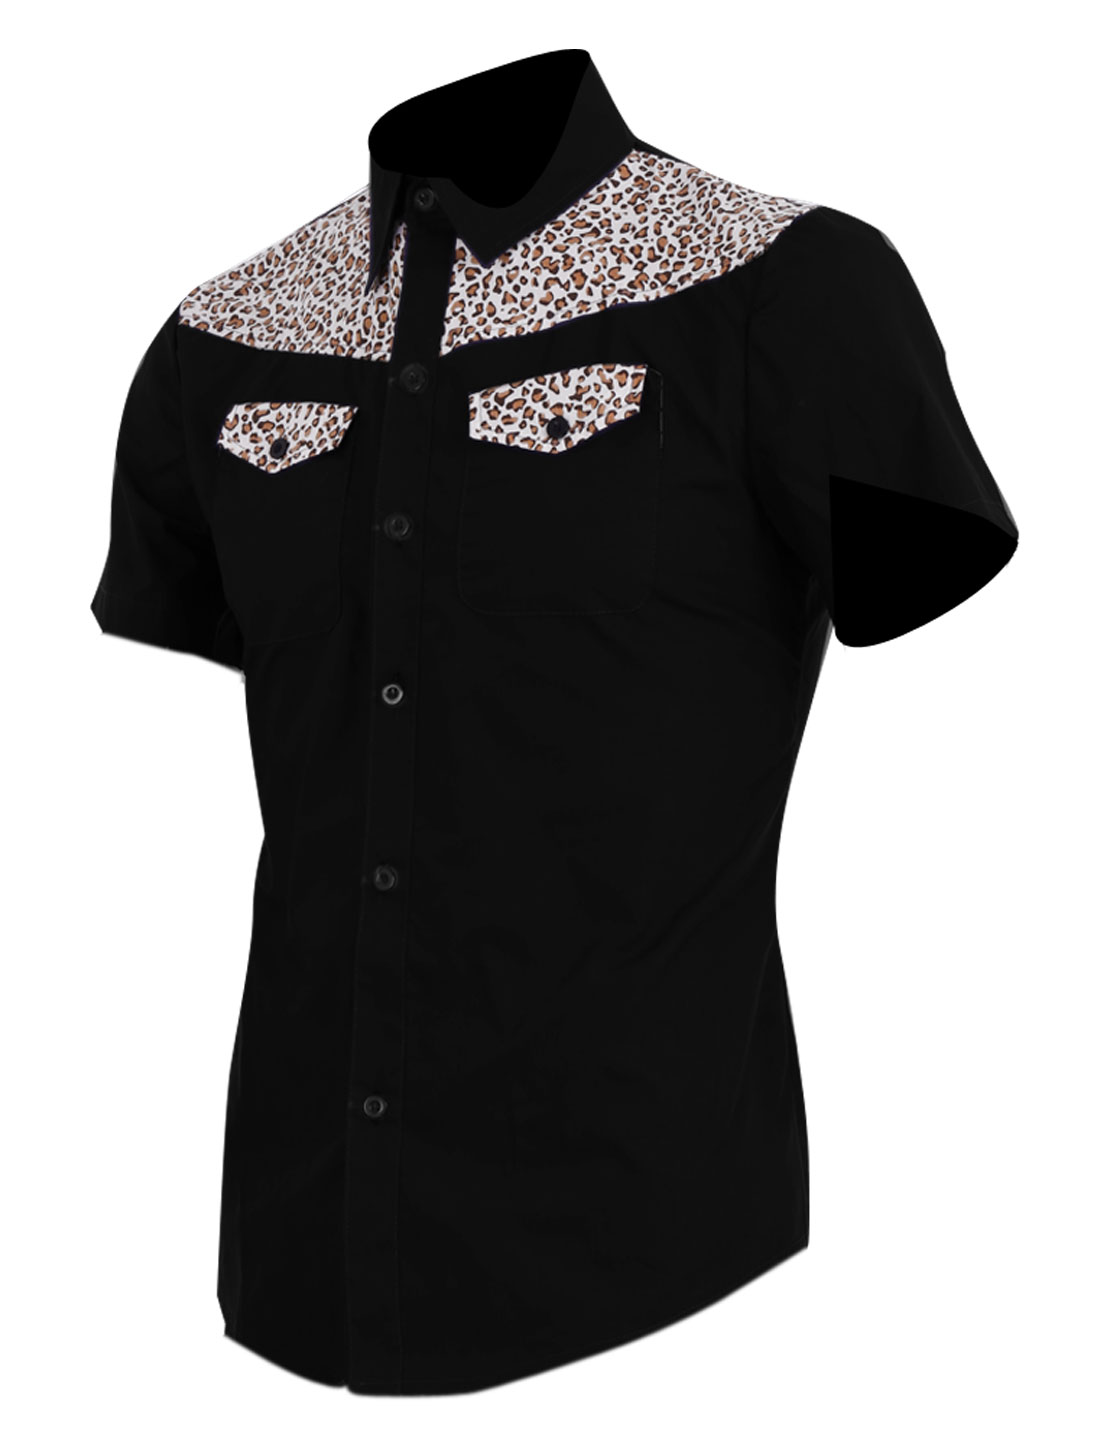 Men Leopard Prints Splice Decor Front Point Collar Shirt Black M